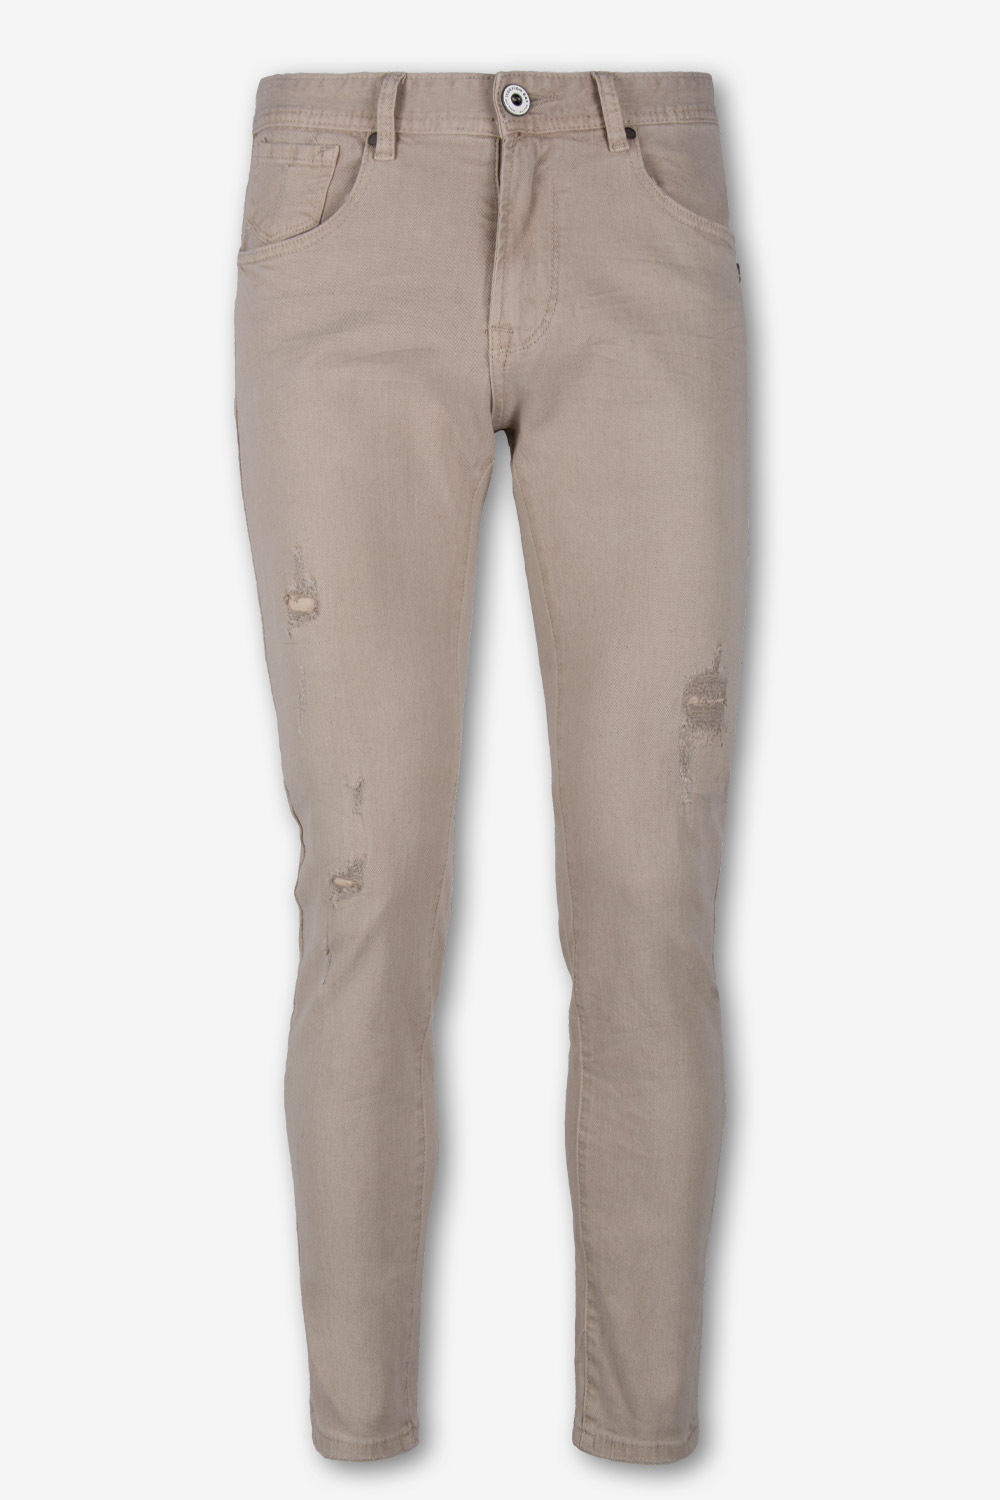 Pantalone 5 tasche Twill Stretch Hot Roads